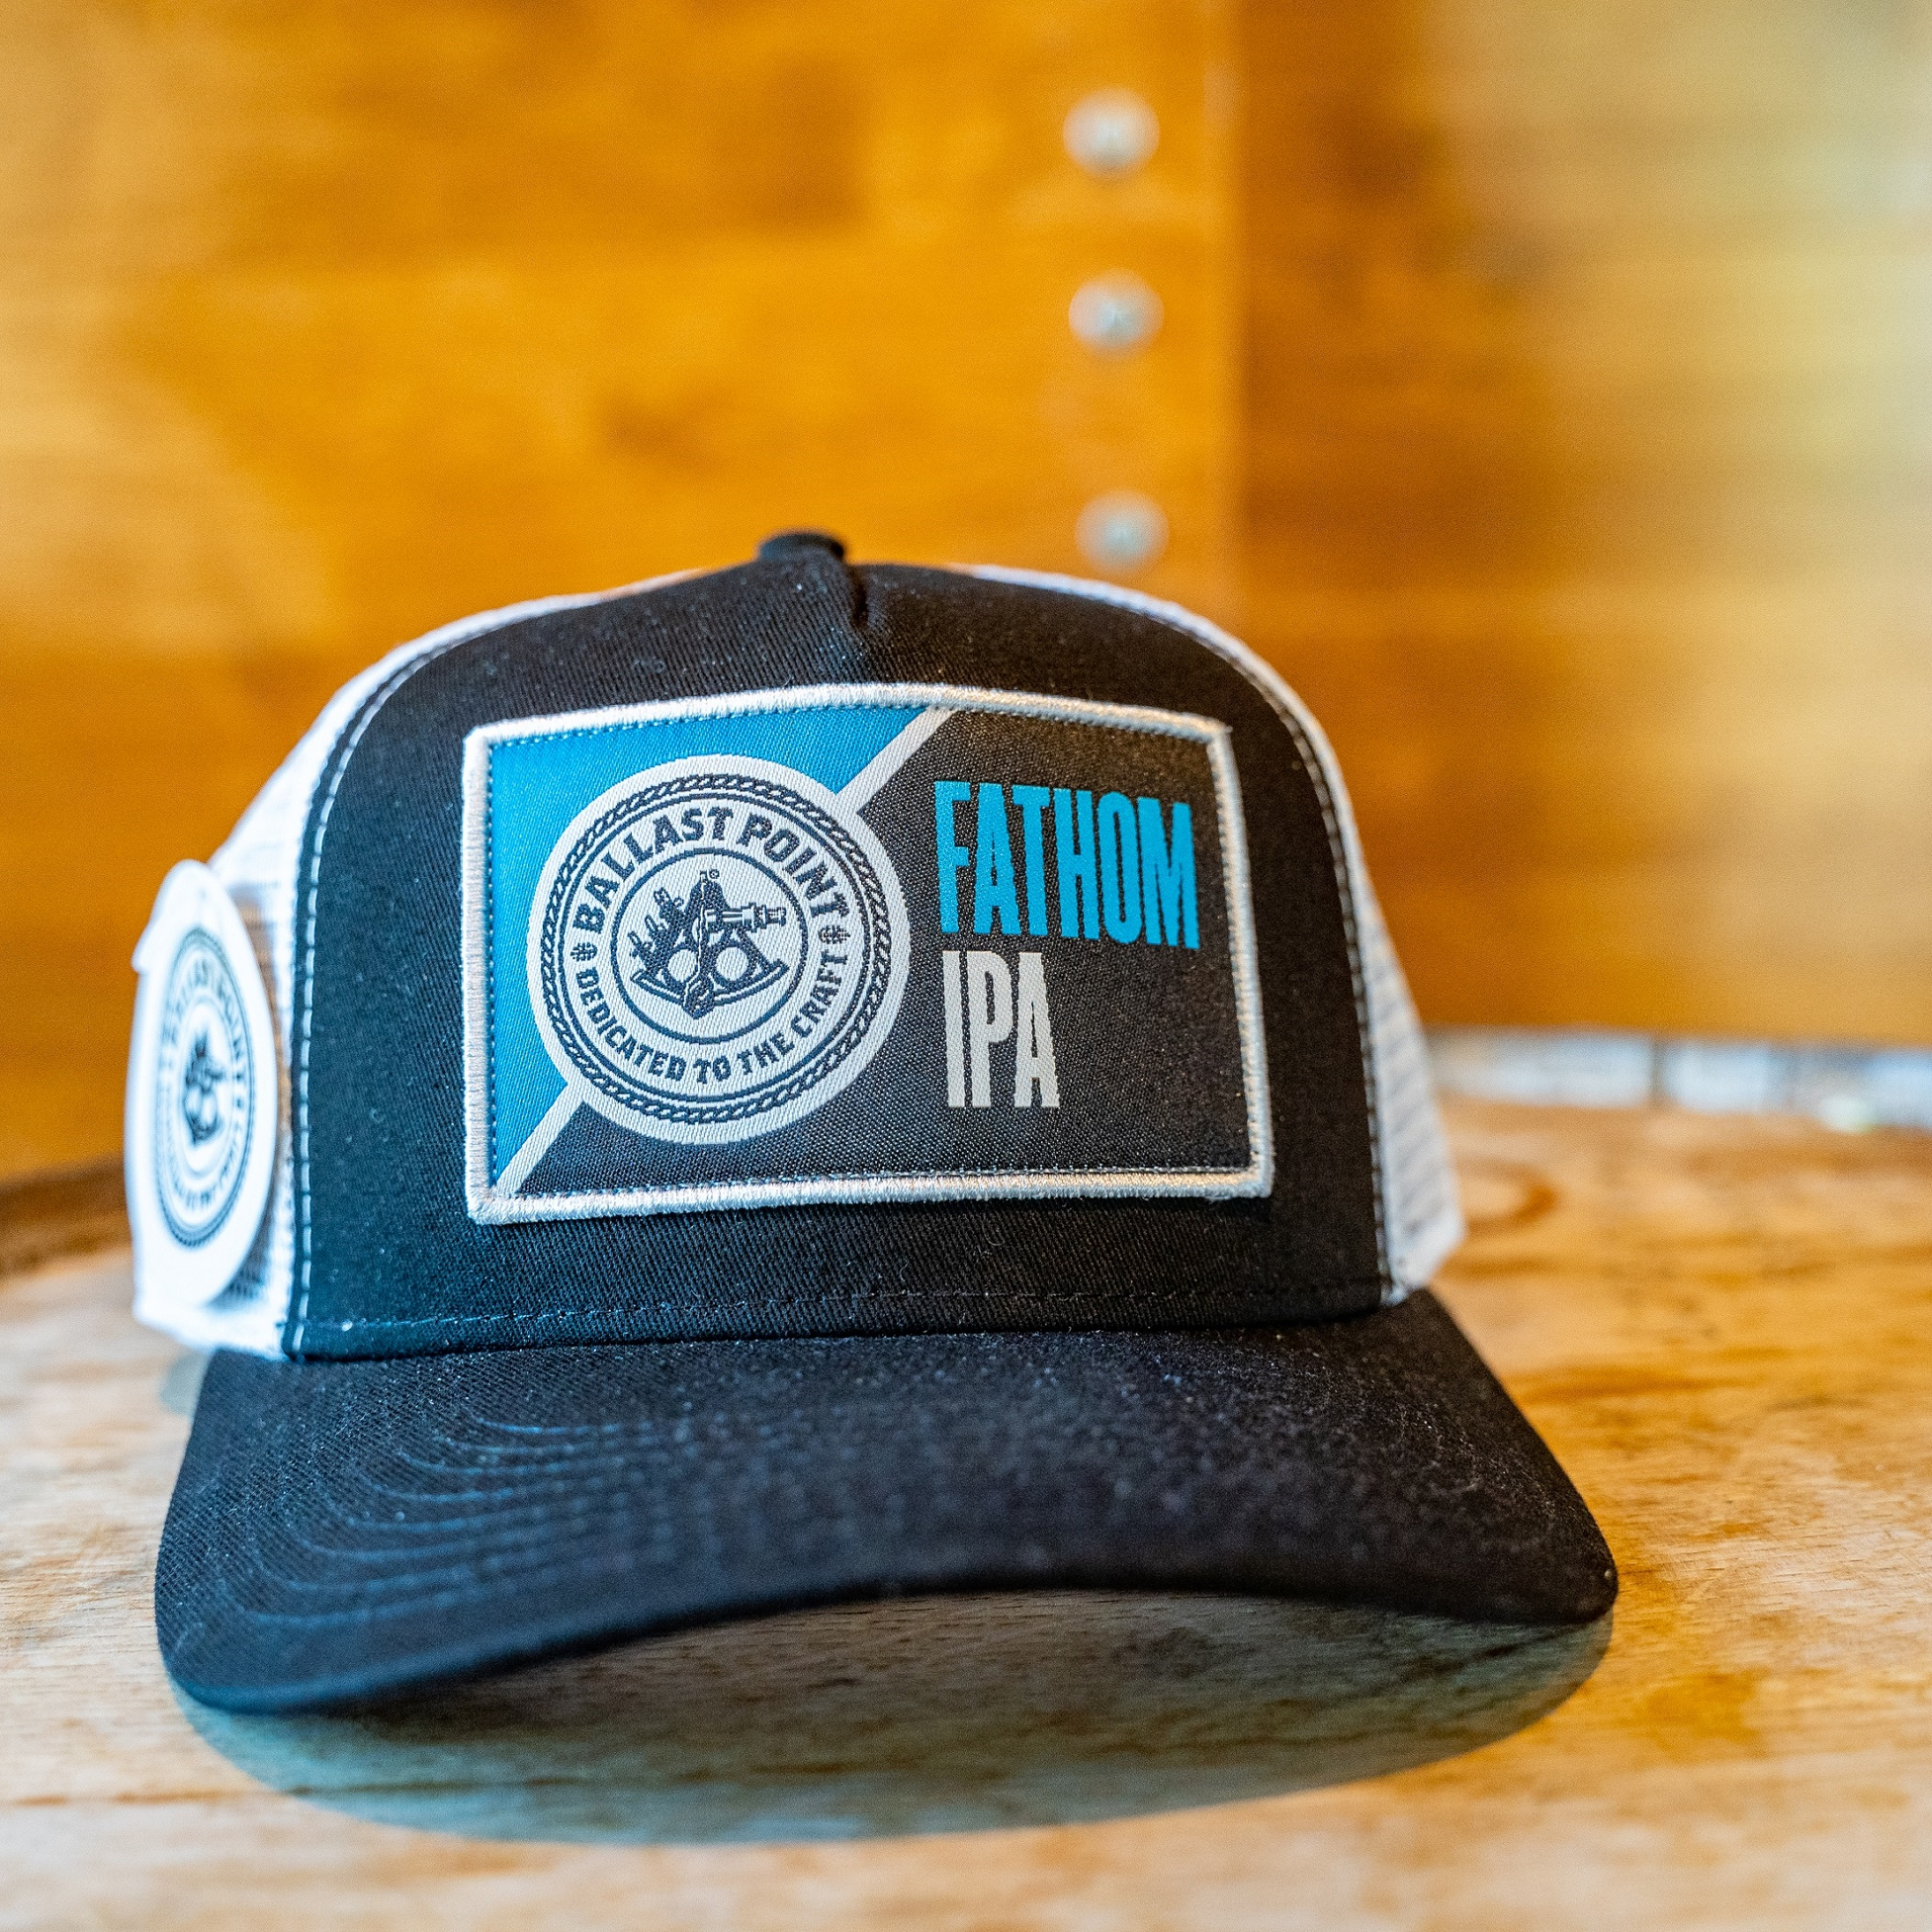 Fathom IPA Trucker SWATCH